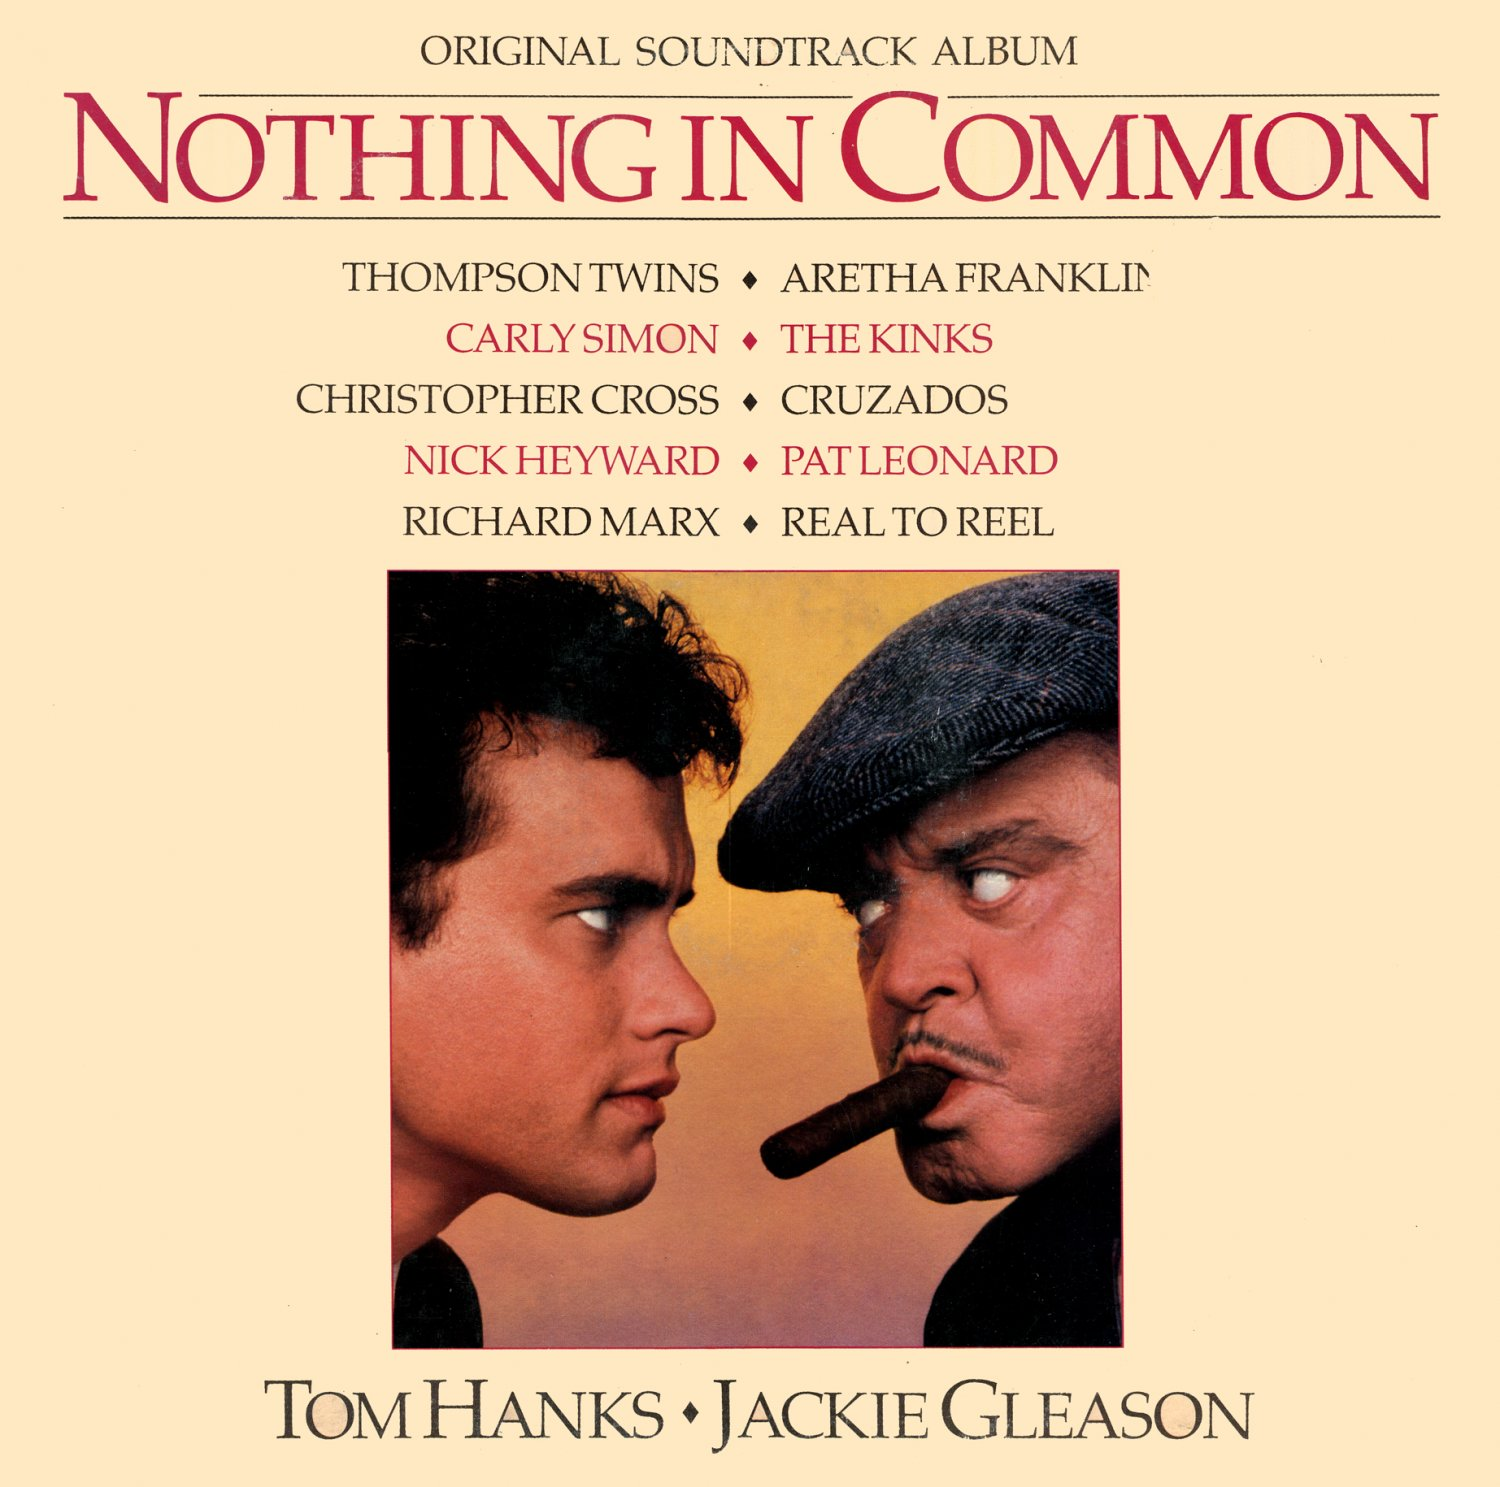 Nothing In Common - Original Soundtrack, Patrick Williams OST LP/CD